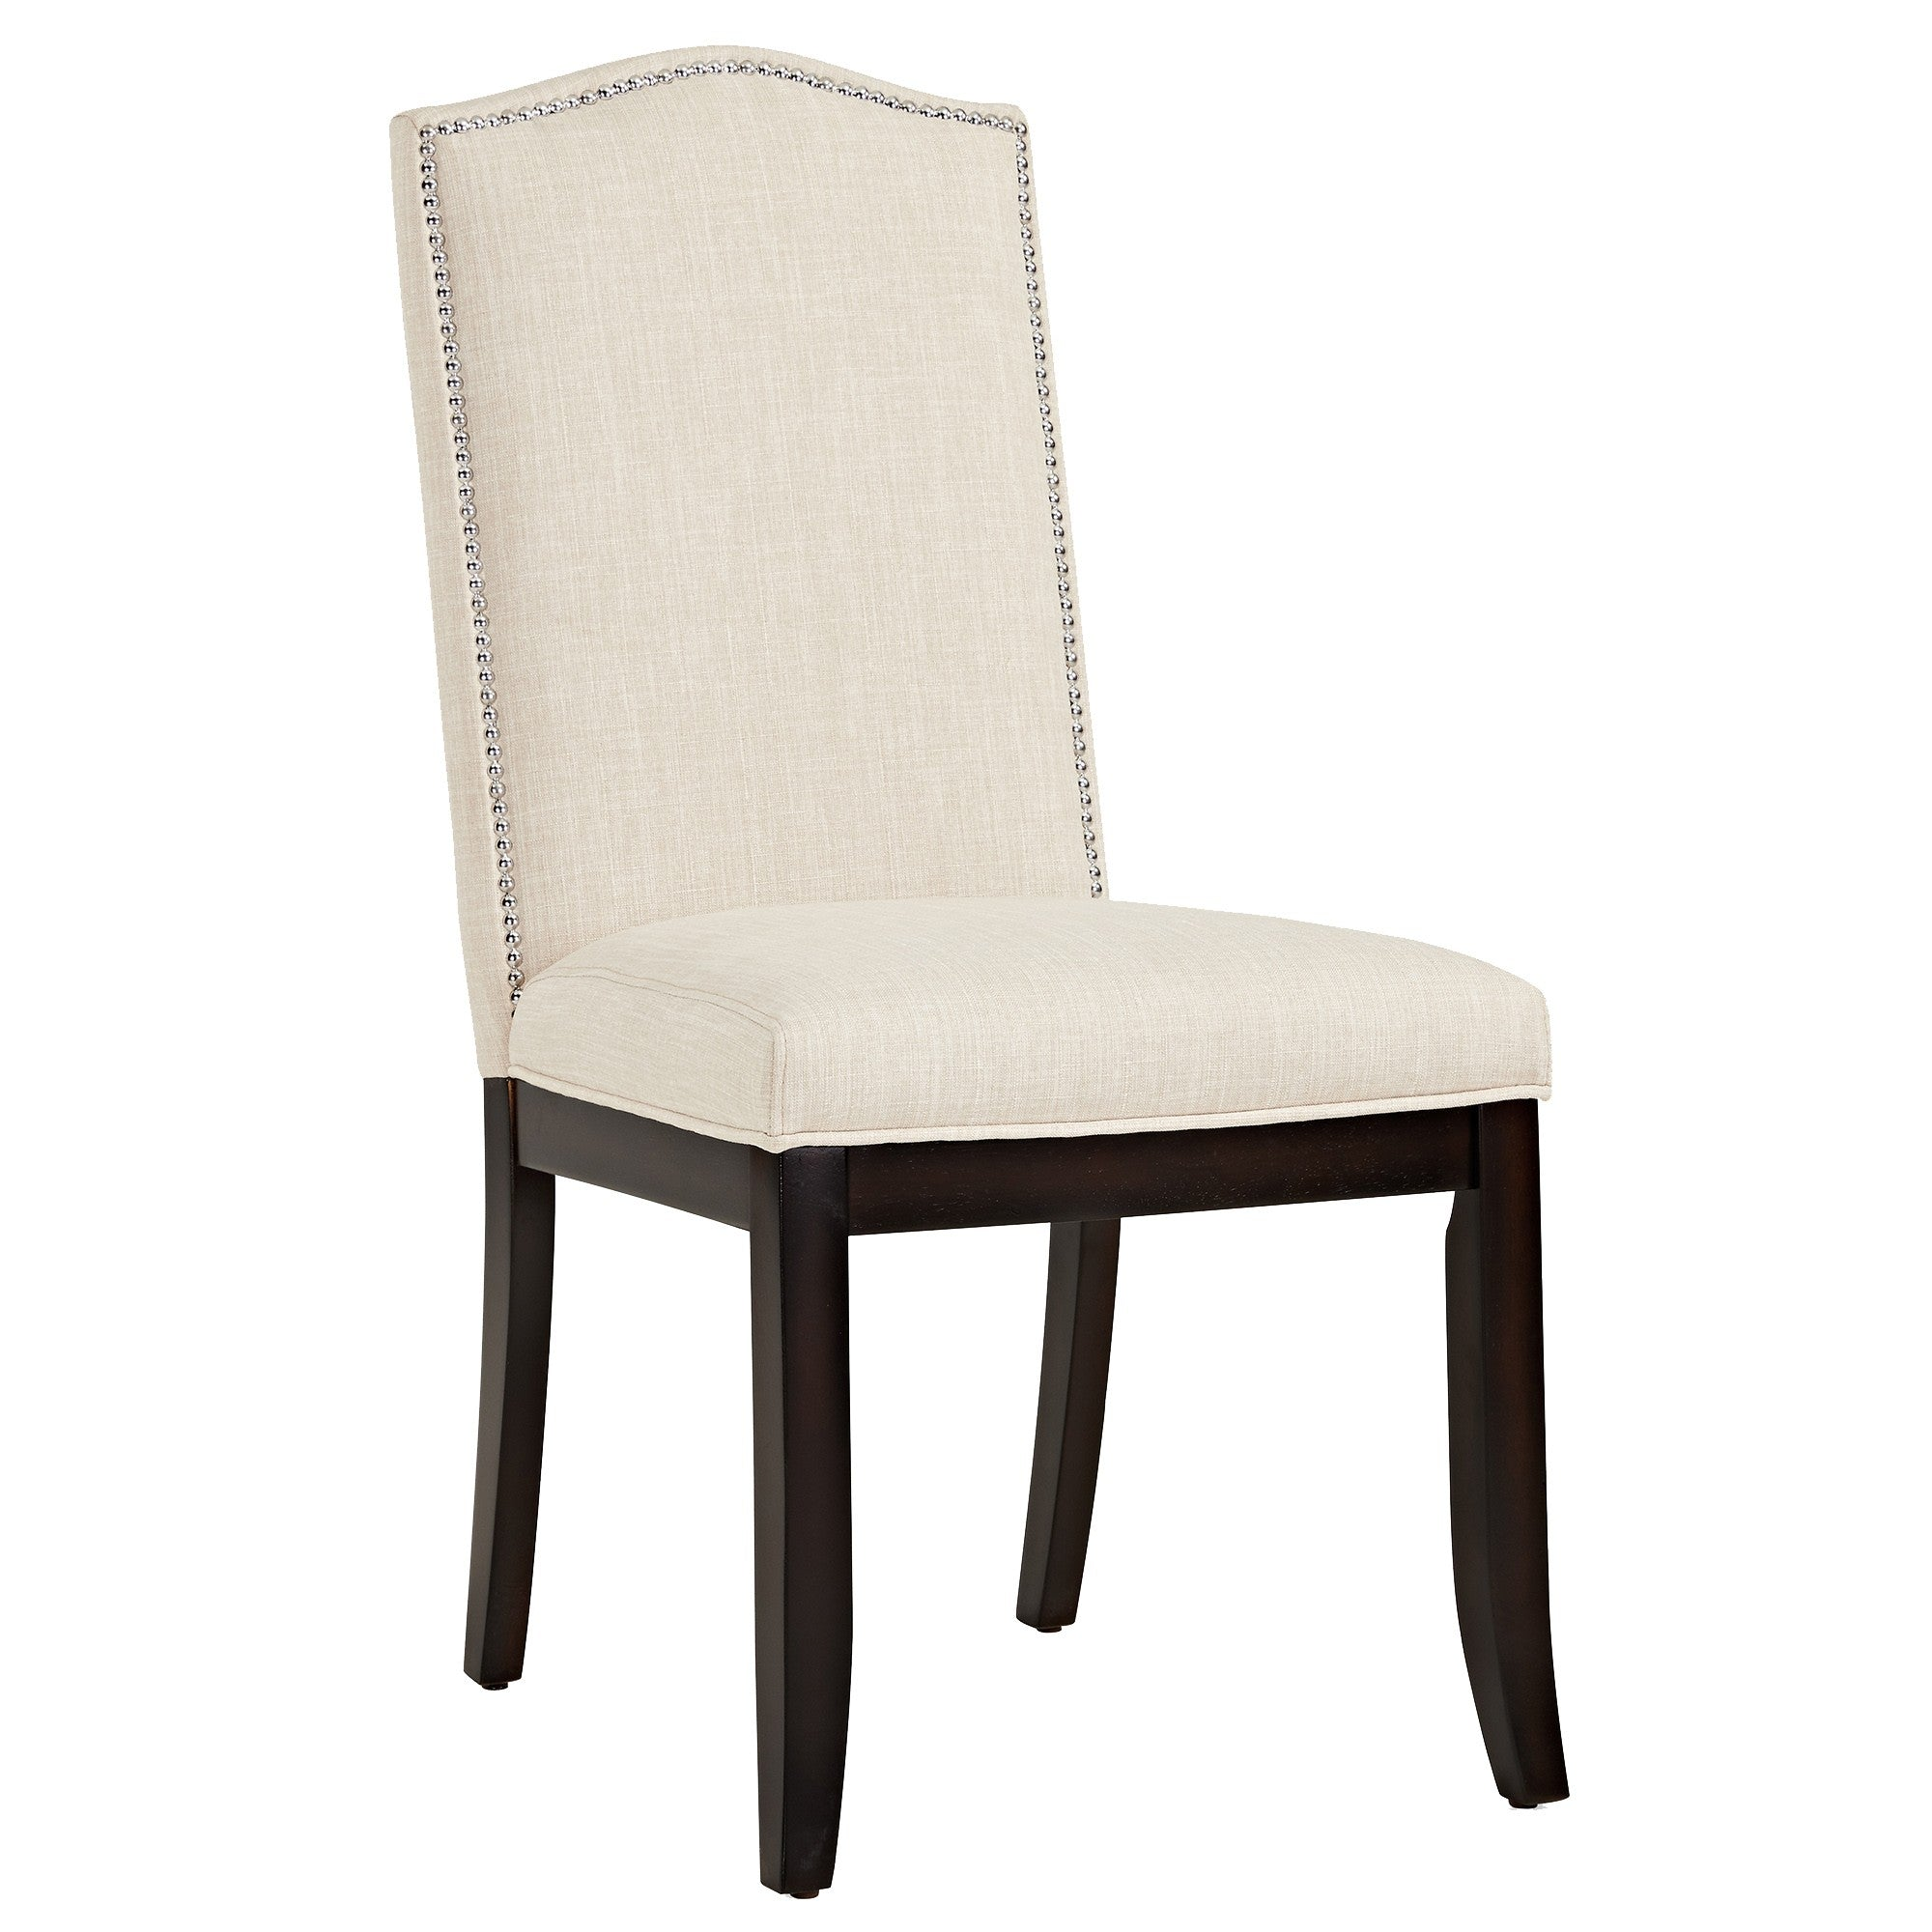 Jazz Side Chair in Beige